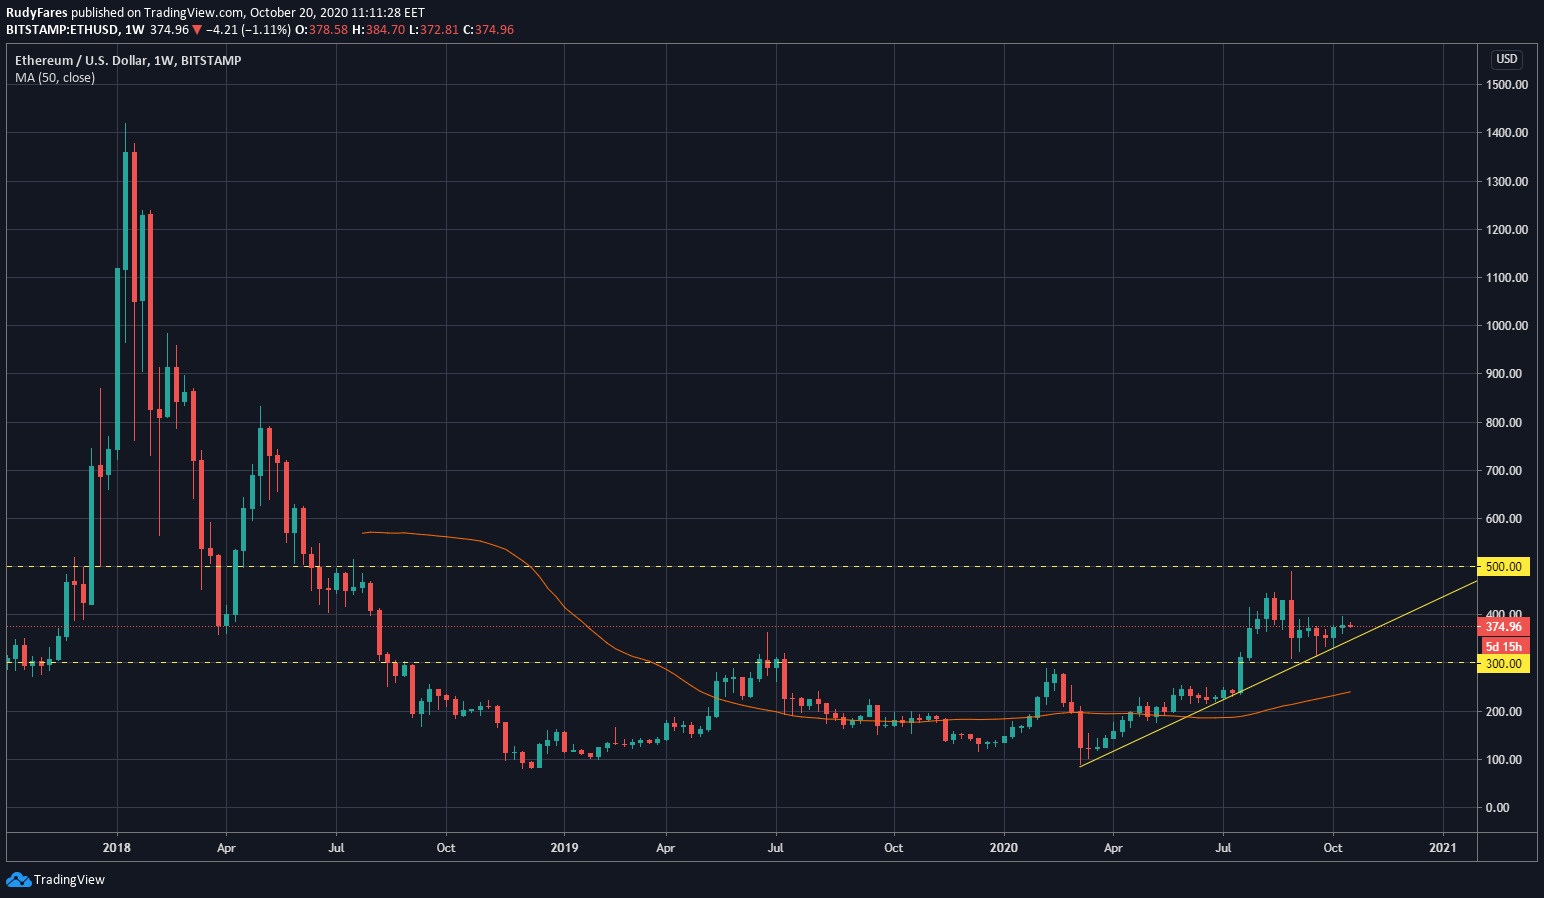 Chart showing the weekly price of ETH from 2018 till 2020